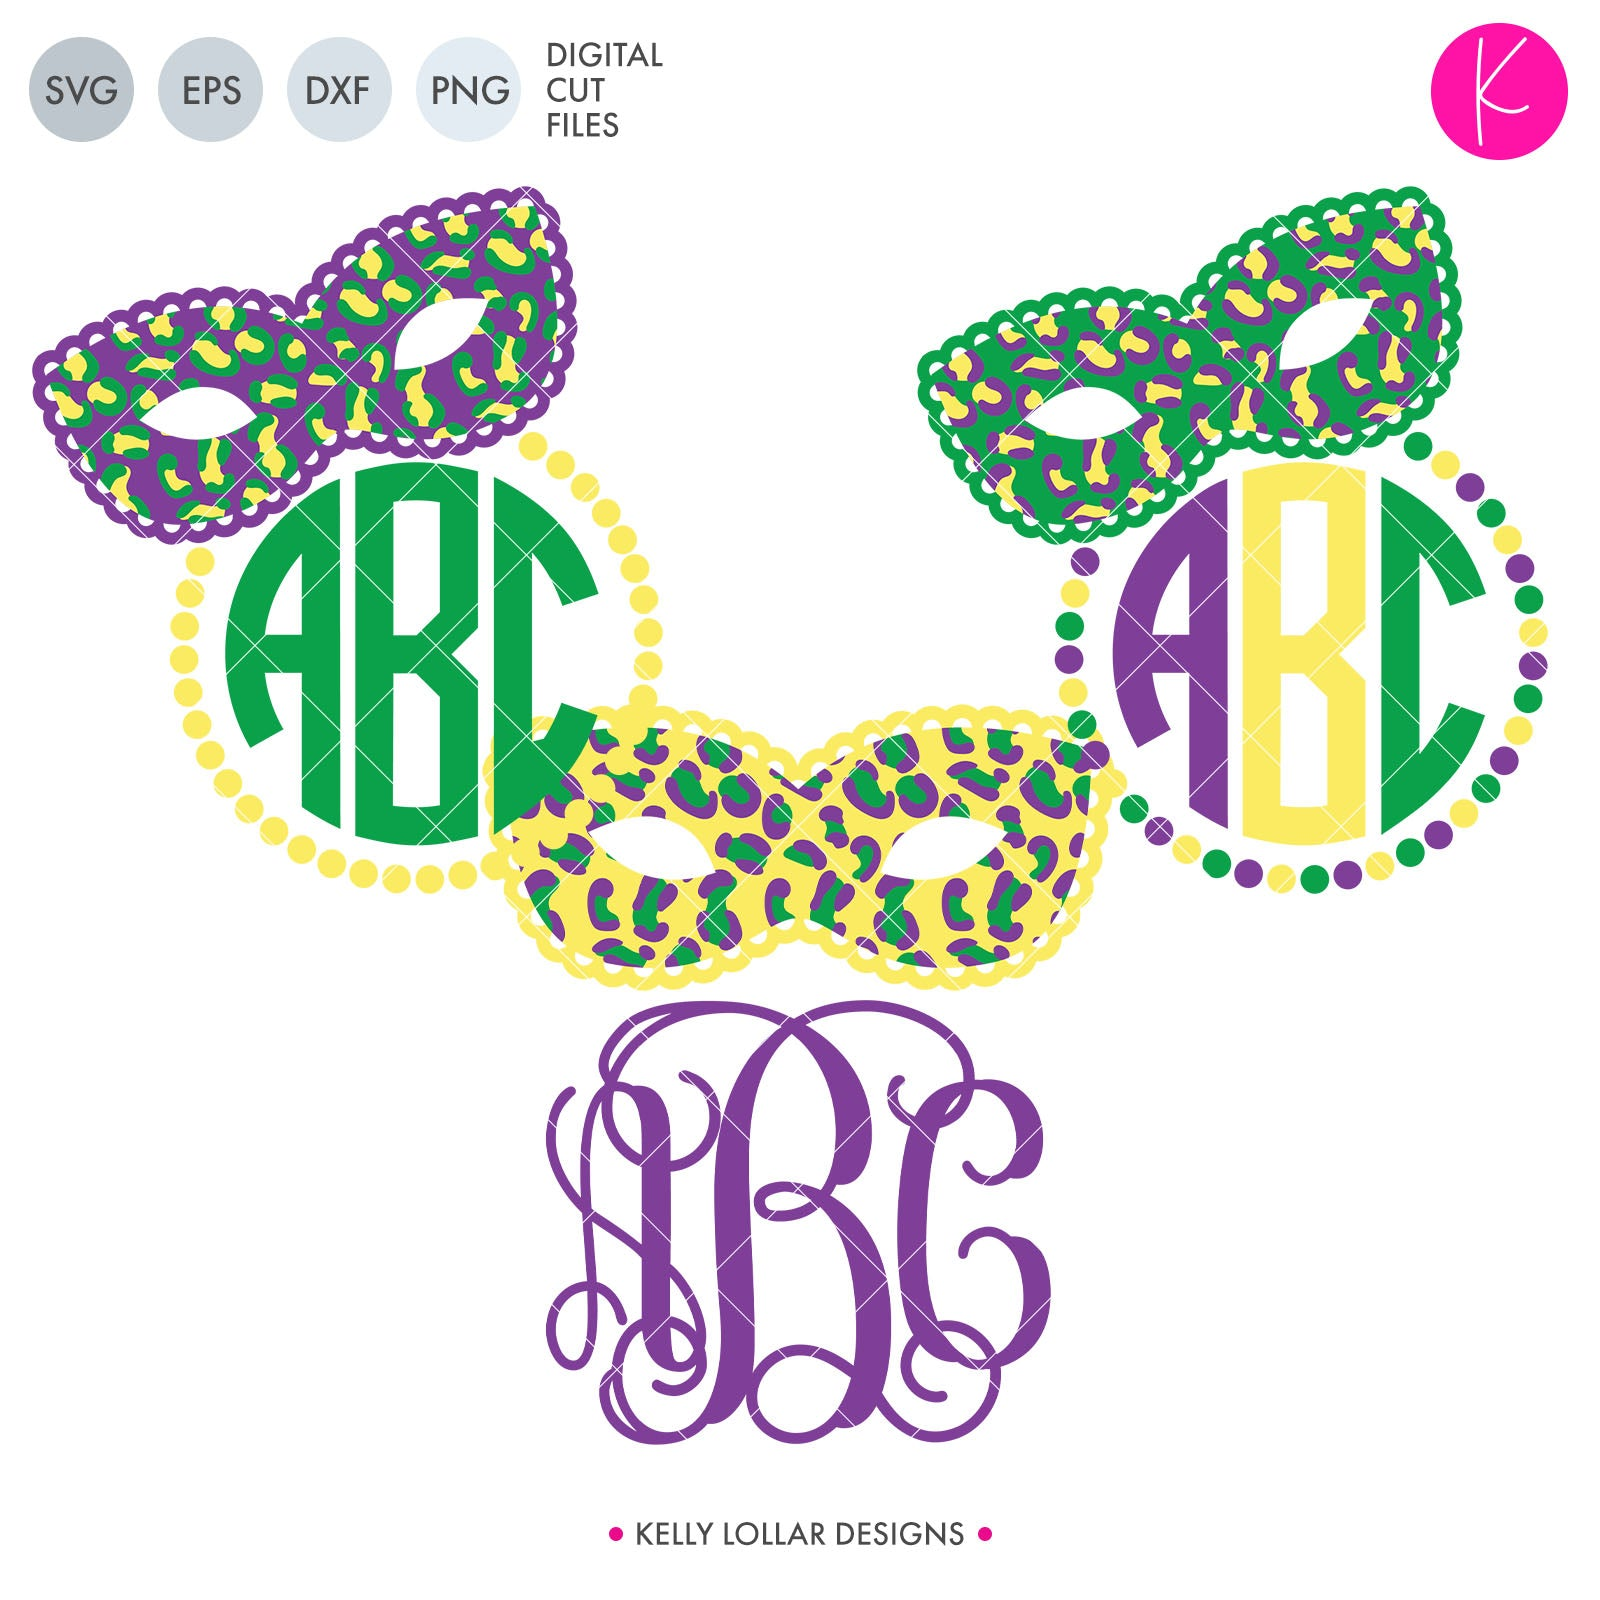 Seasonal Svg Dxf Eps Png Cut Files Kelly Lollar Designs Tagged Masquerade